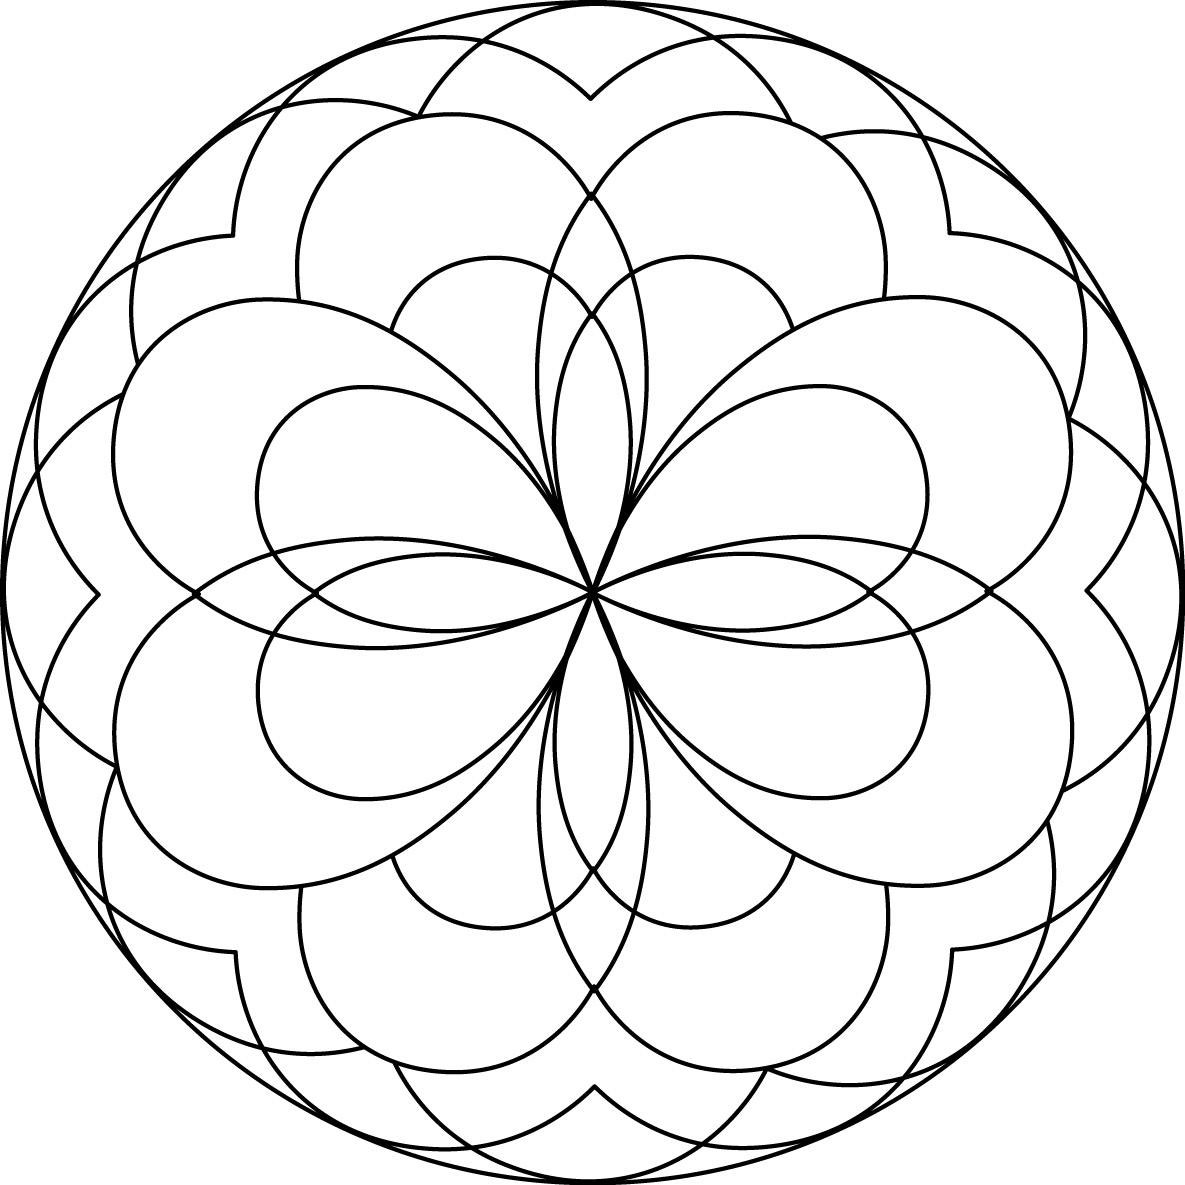 simple mandalas to color simple mandala coloring pages download and print for free simple color mandalas to